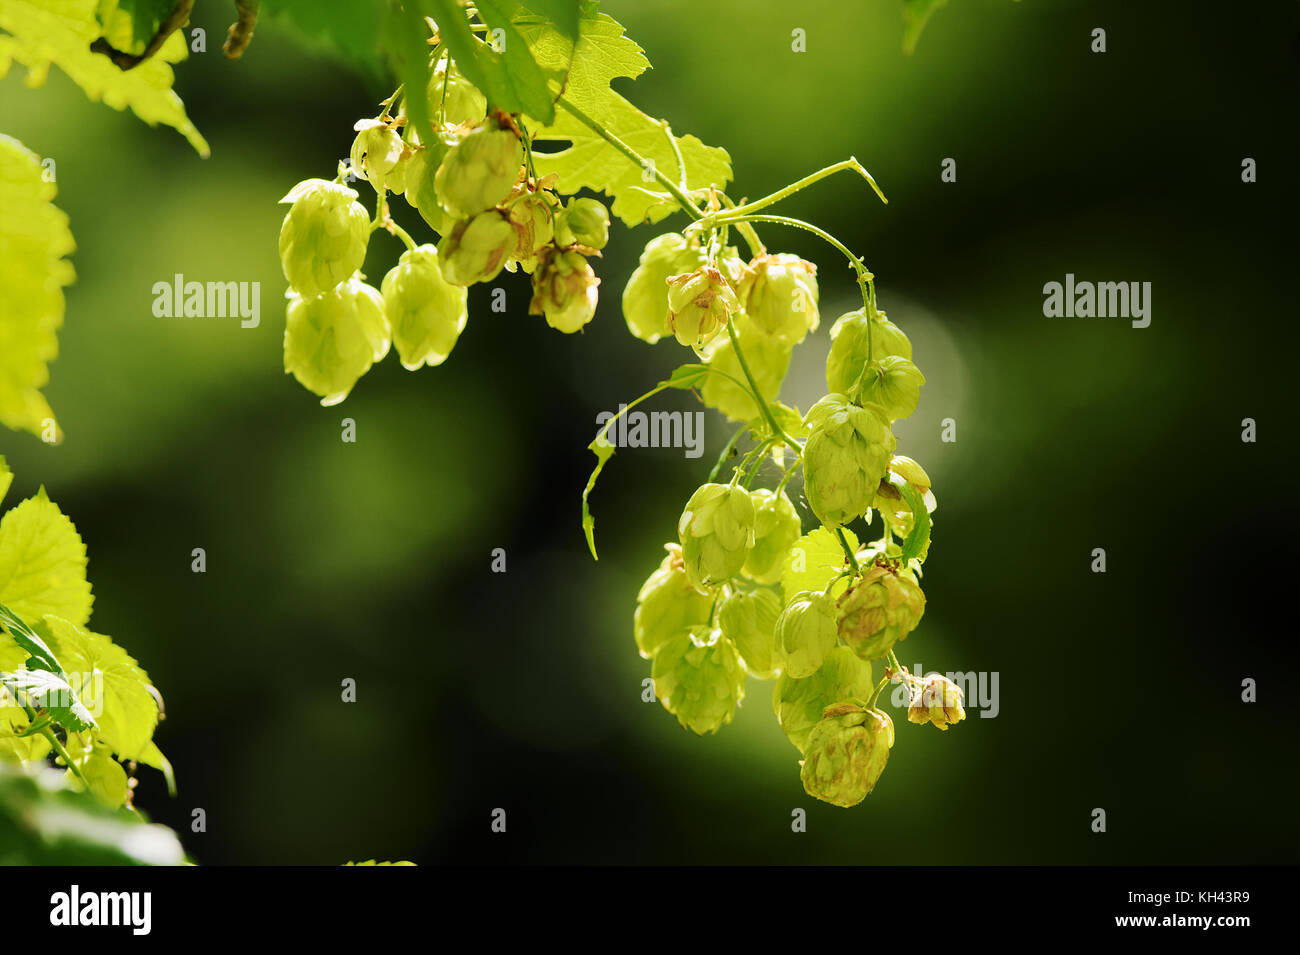 Hops growing on Humulus lupulus plant. Common hop flowers or seed cones and green foliage backlit by the sun. Poland. - Stock Image